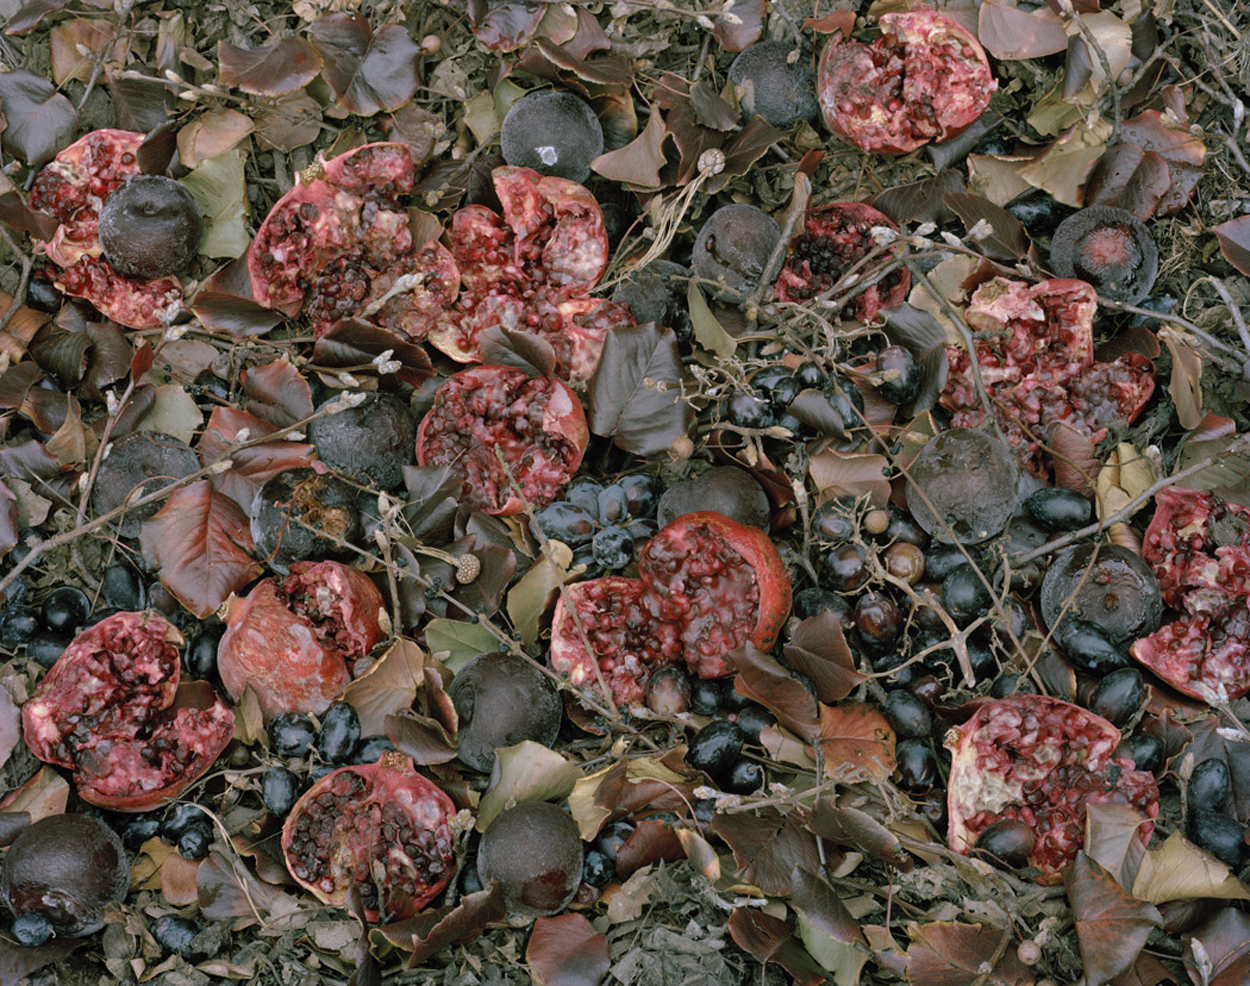 "Fallen Nº 182, 36 x 44"" 2011  ""In 'Fallen No. 182' (2011) pomegranates, the ancient symbol of fecundity, lie split open and losing their seeds in a bed of grapes, plums and leaves—the reds, purples and greens reminiscent of Marie Cosindas's palette, although the scale and subject are quite different."" - William Myers, The Wall Street Journal"